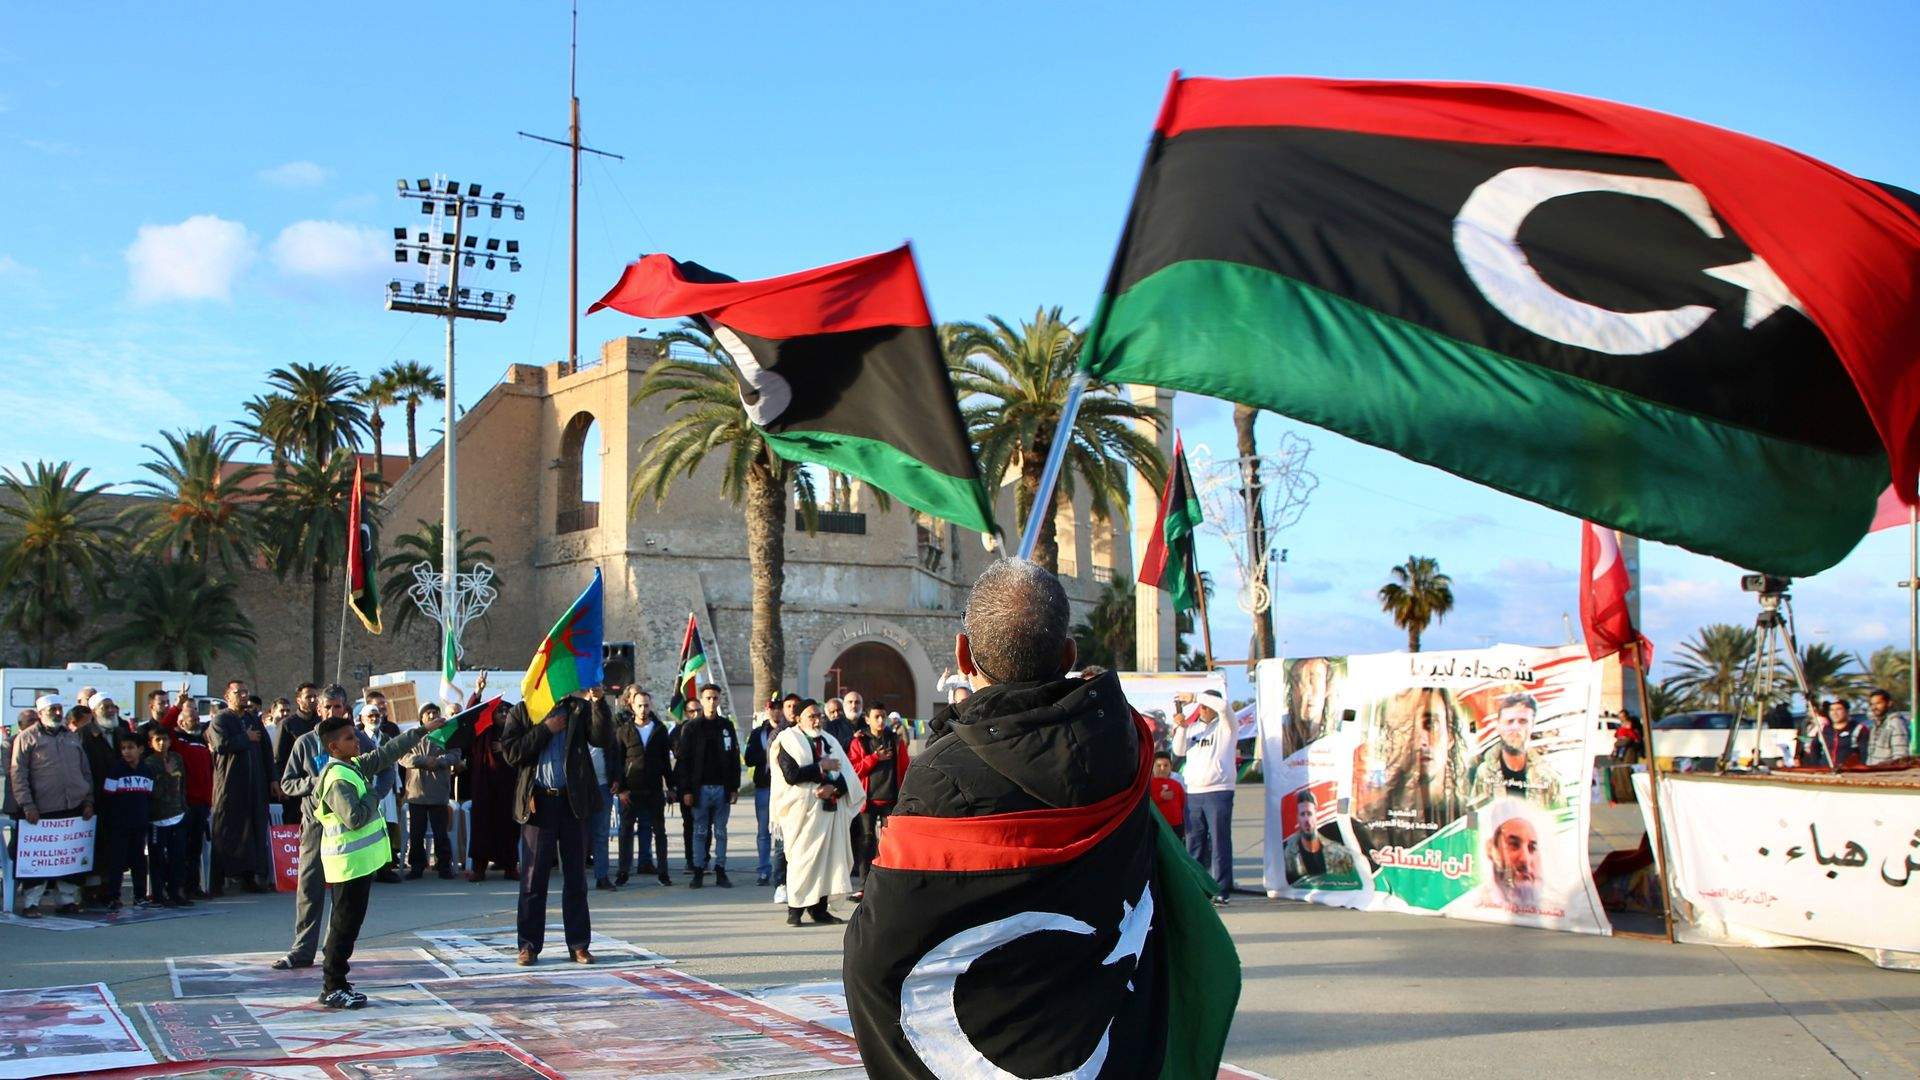 World leaders to gather, discuss Libyan conflict on Sunday